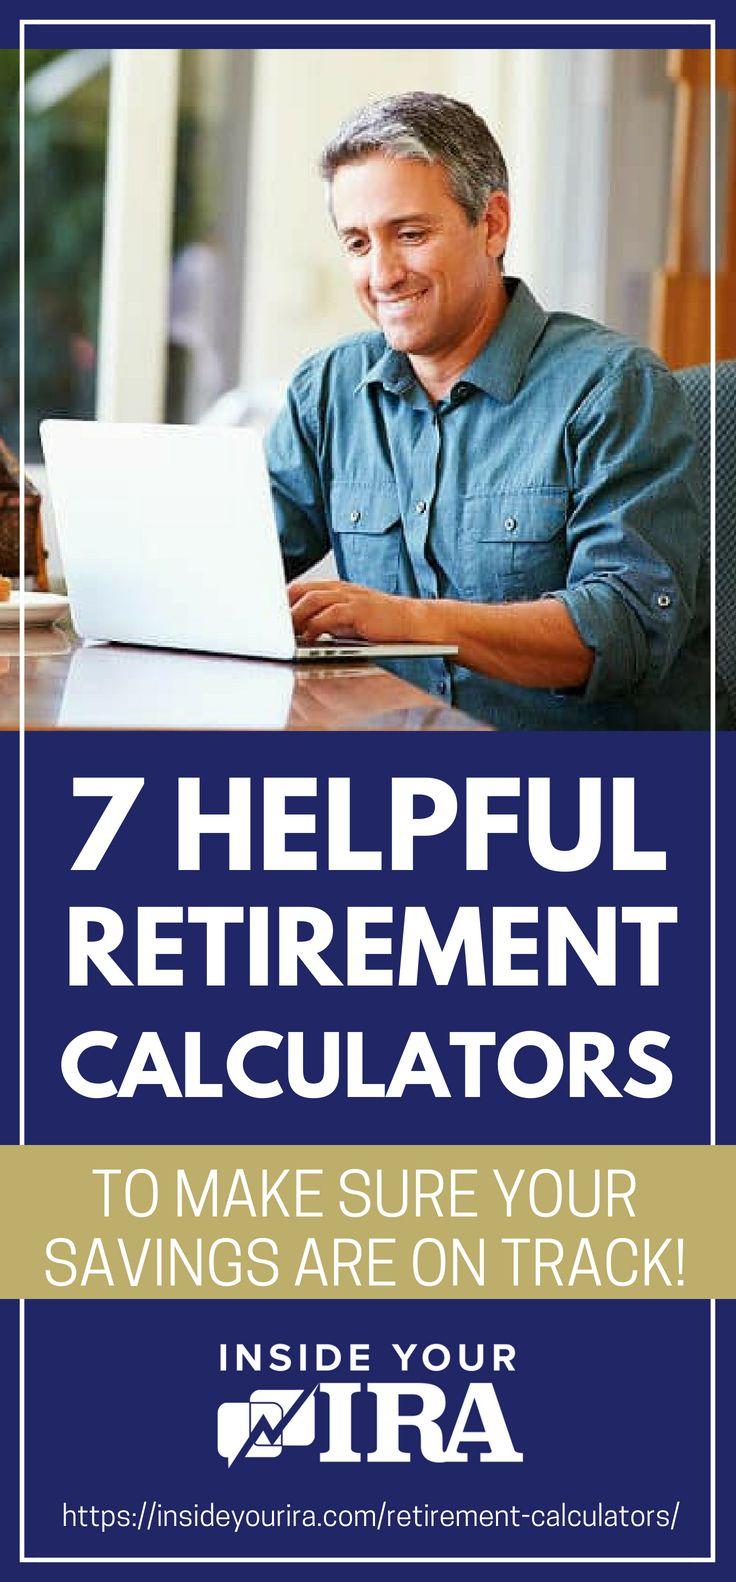 Helpful Retirement Calculators To Make Sure Your Savings Are On Track! | Inside Your IRA https://insideyourira.com/retirement-calculators/